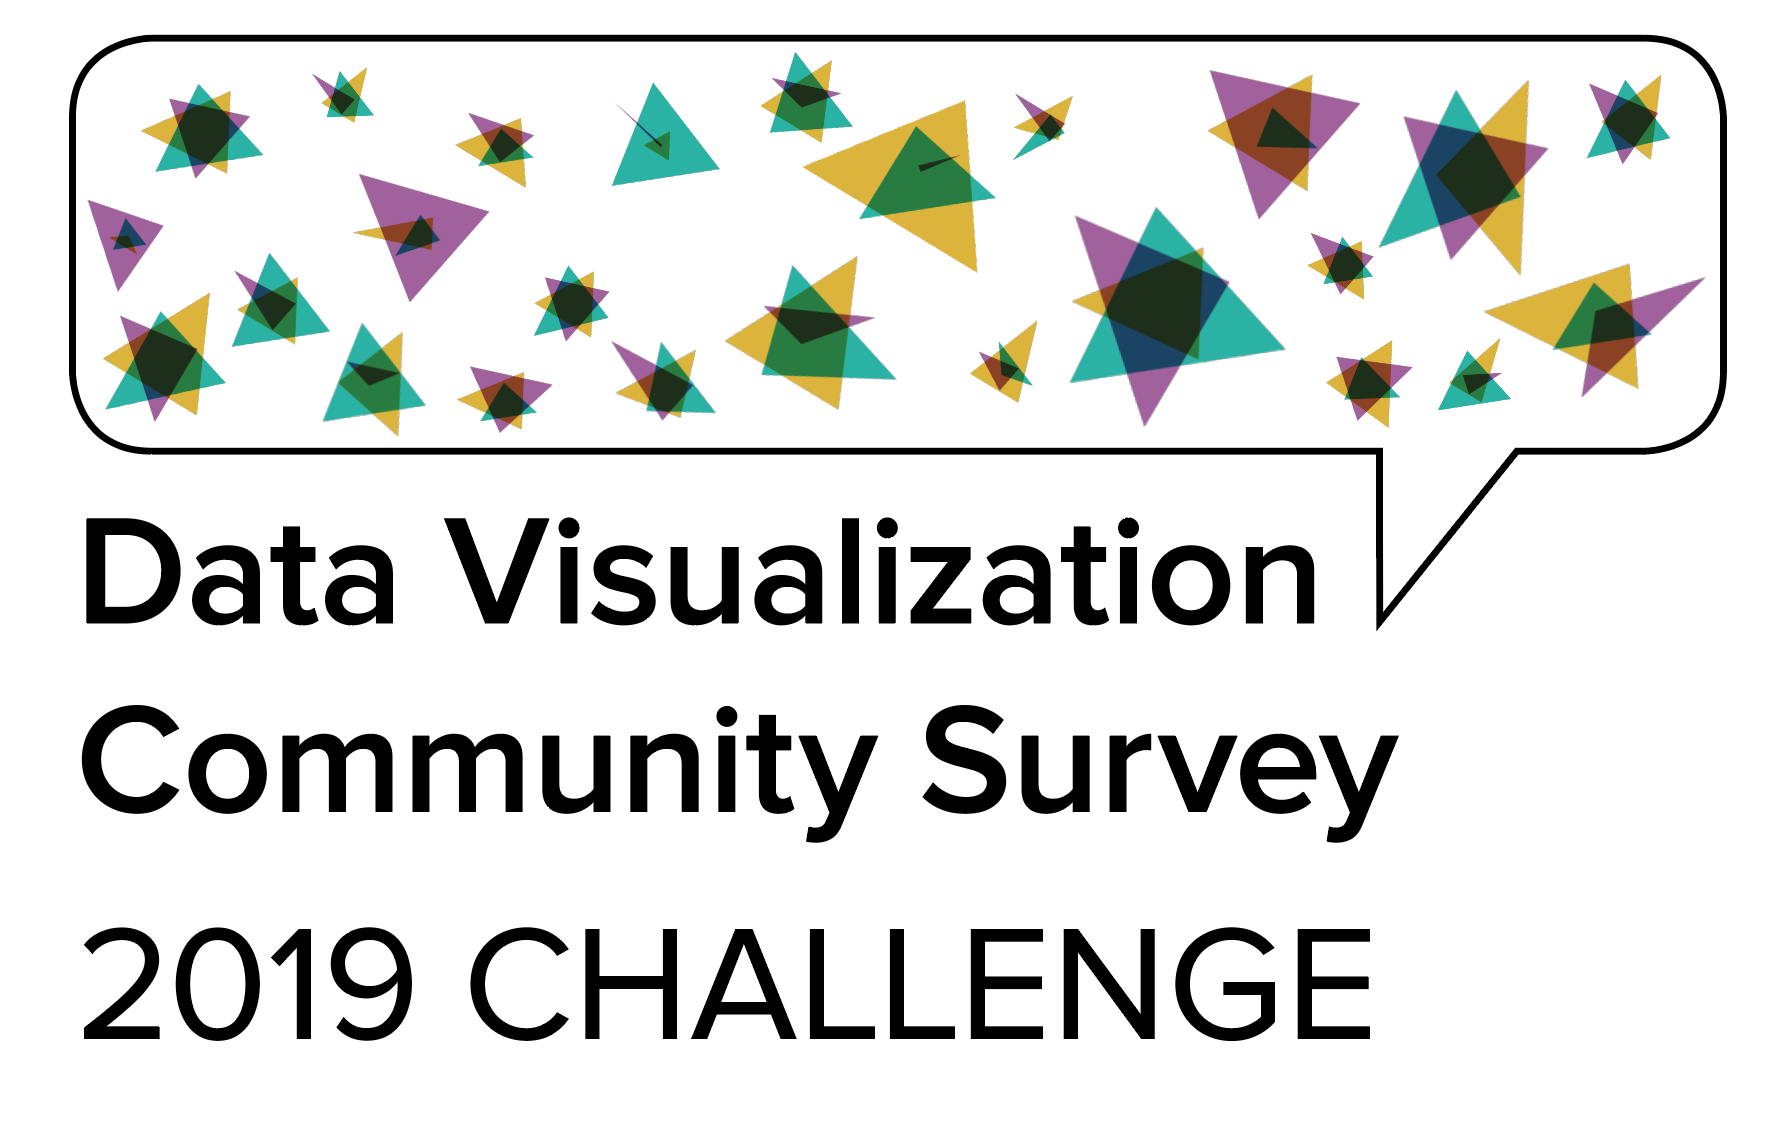 2019 Data Visualization Community Survey Challenge